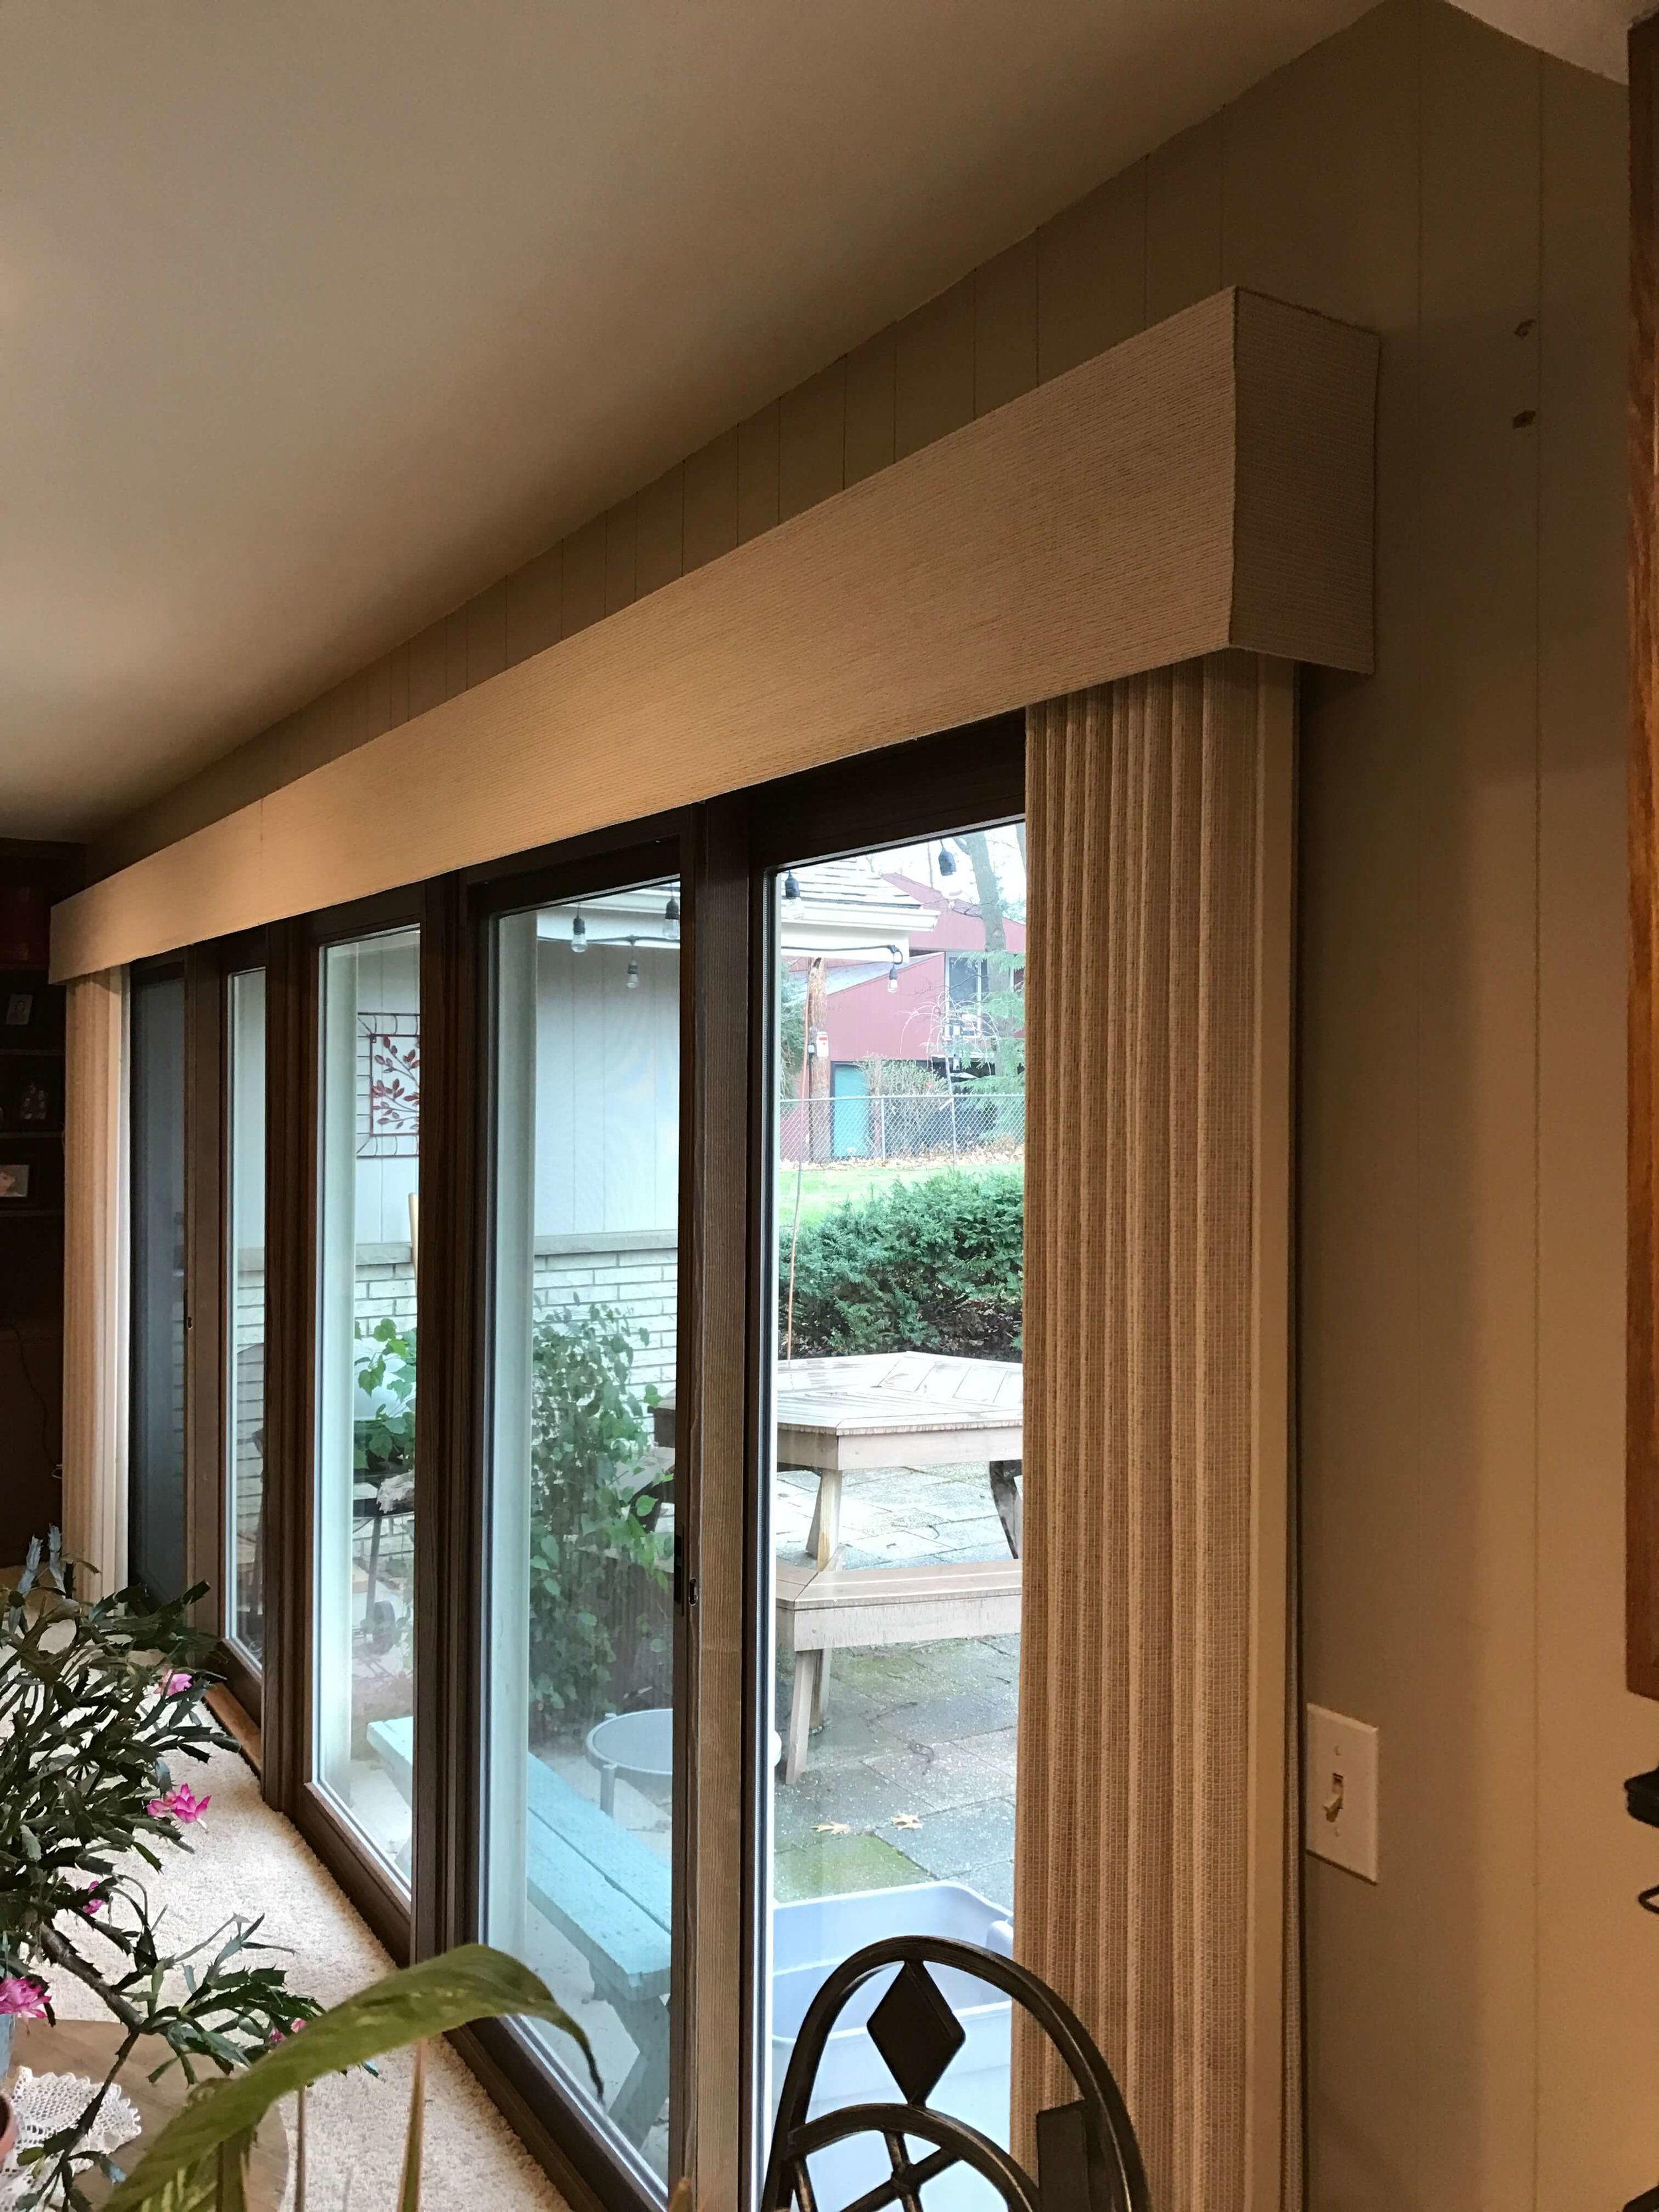 custom-window-treatments-coverings-verona-wi.JPG